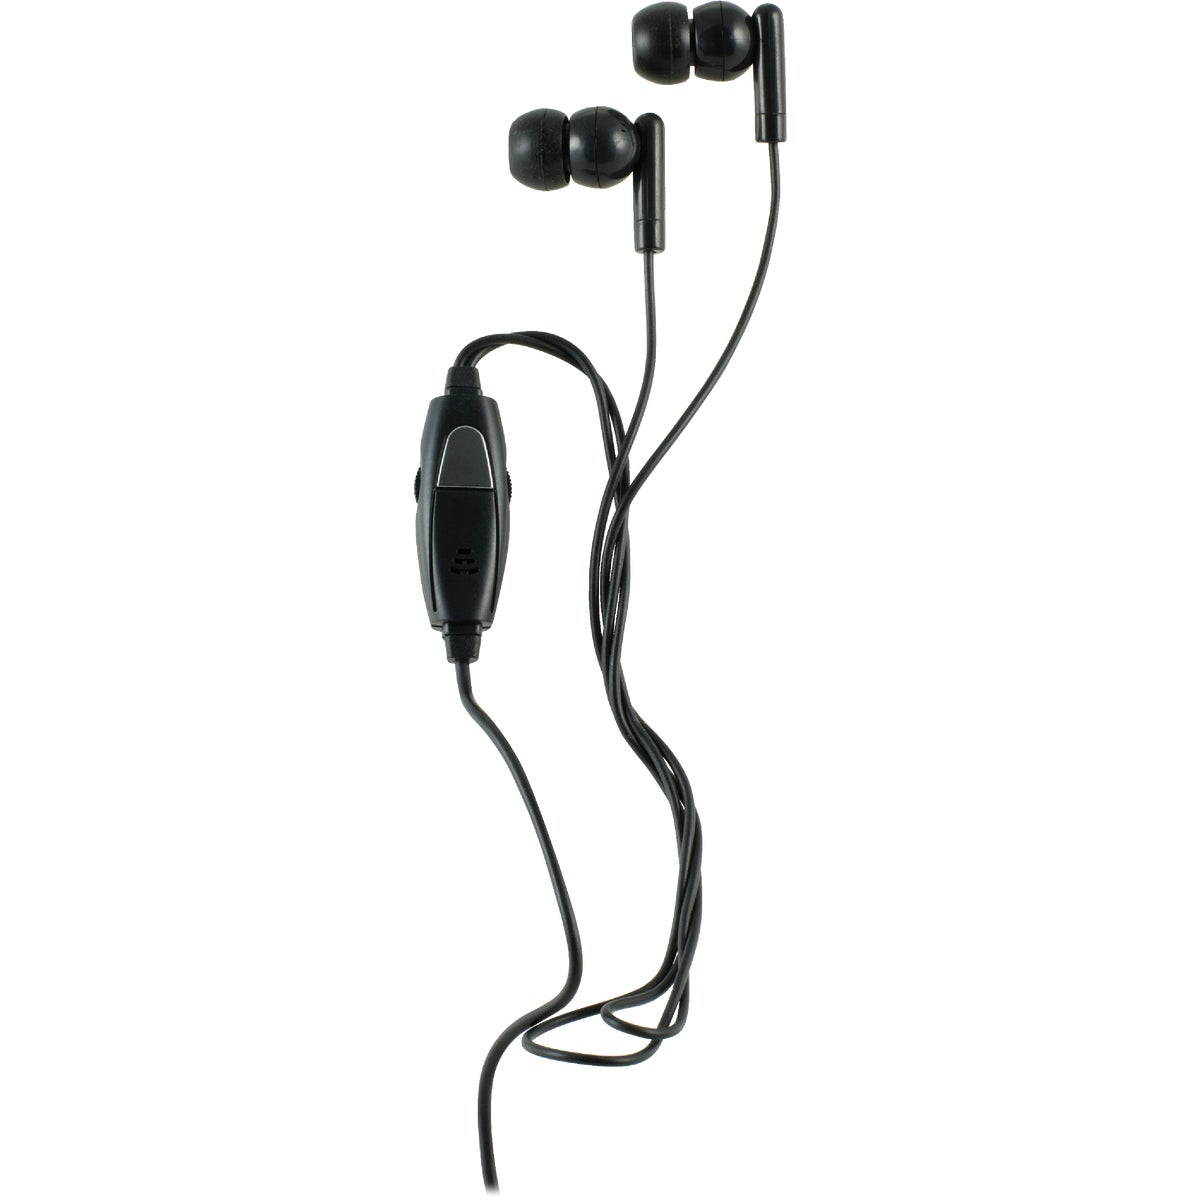 Jasco Products Co. MICROPHN/IN EAR HEADSET 98973